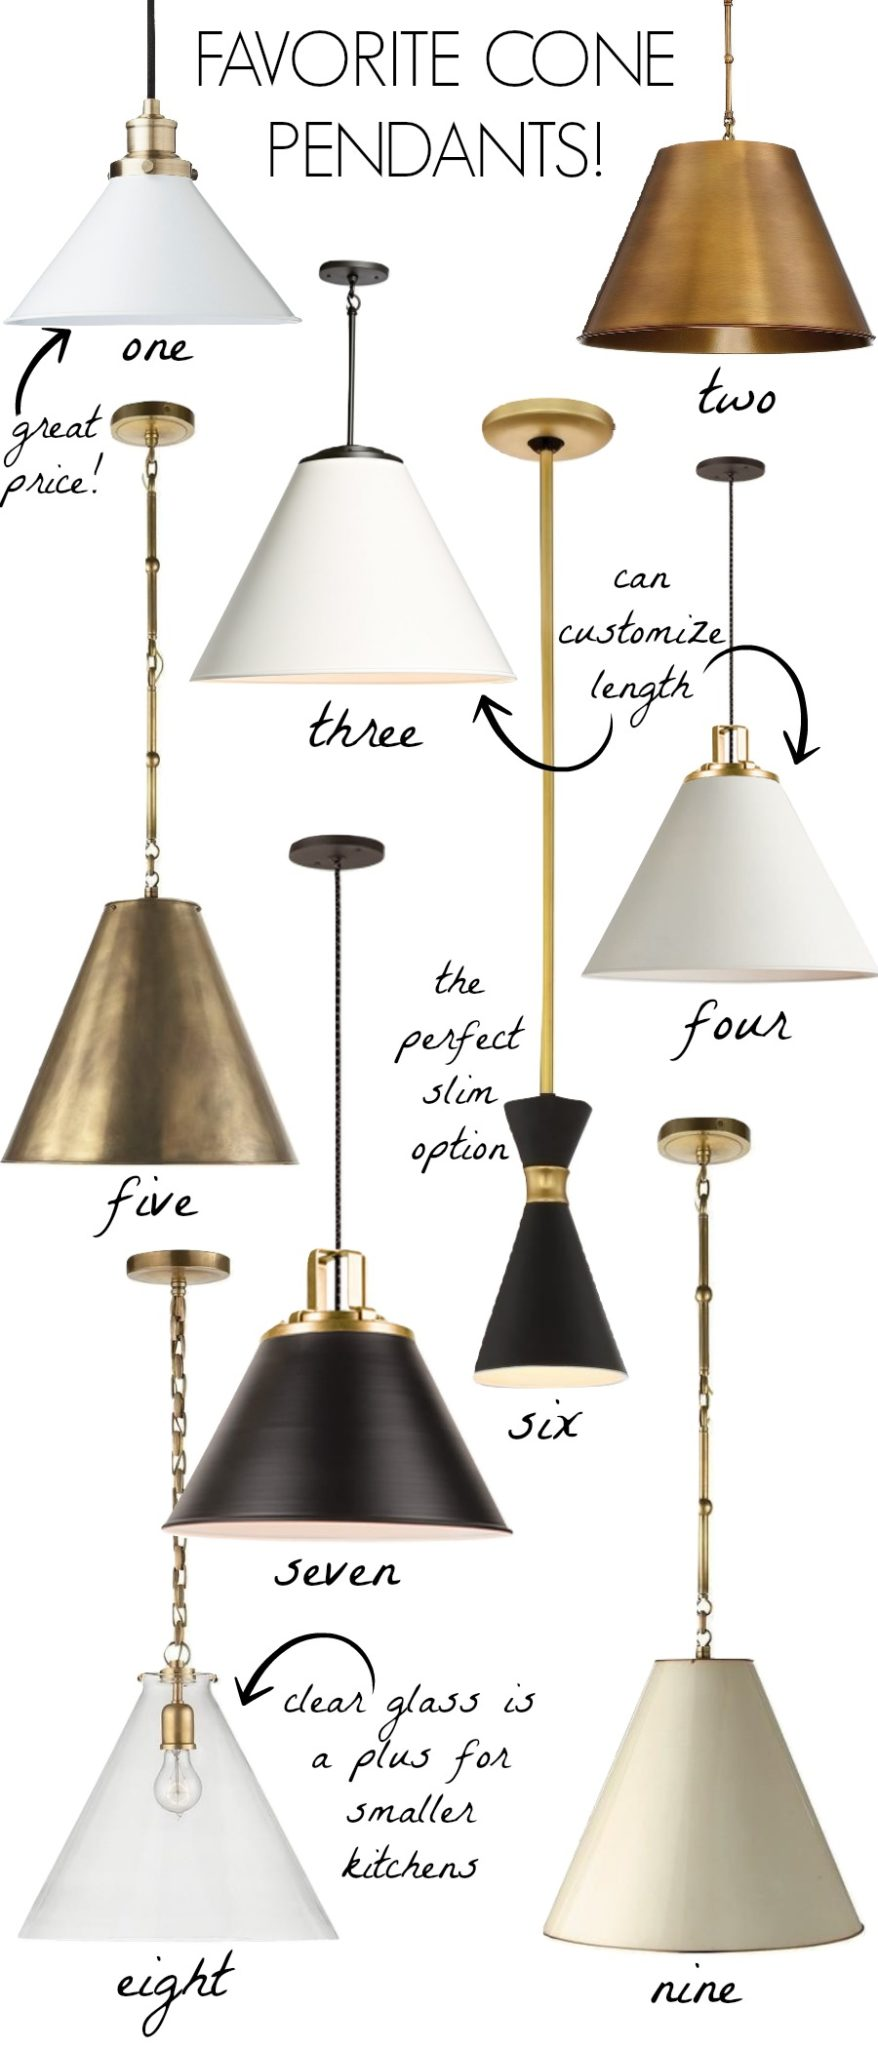 frost min eurotech cone lighting pendant shop the nz products